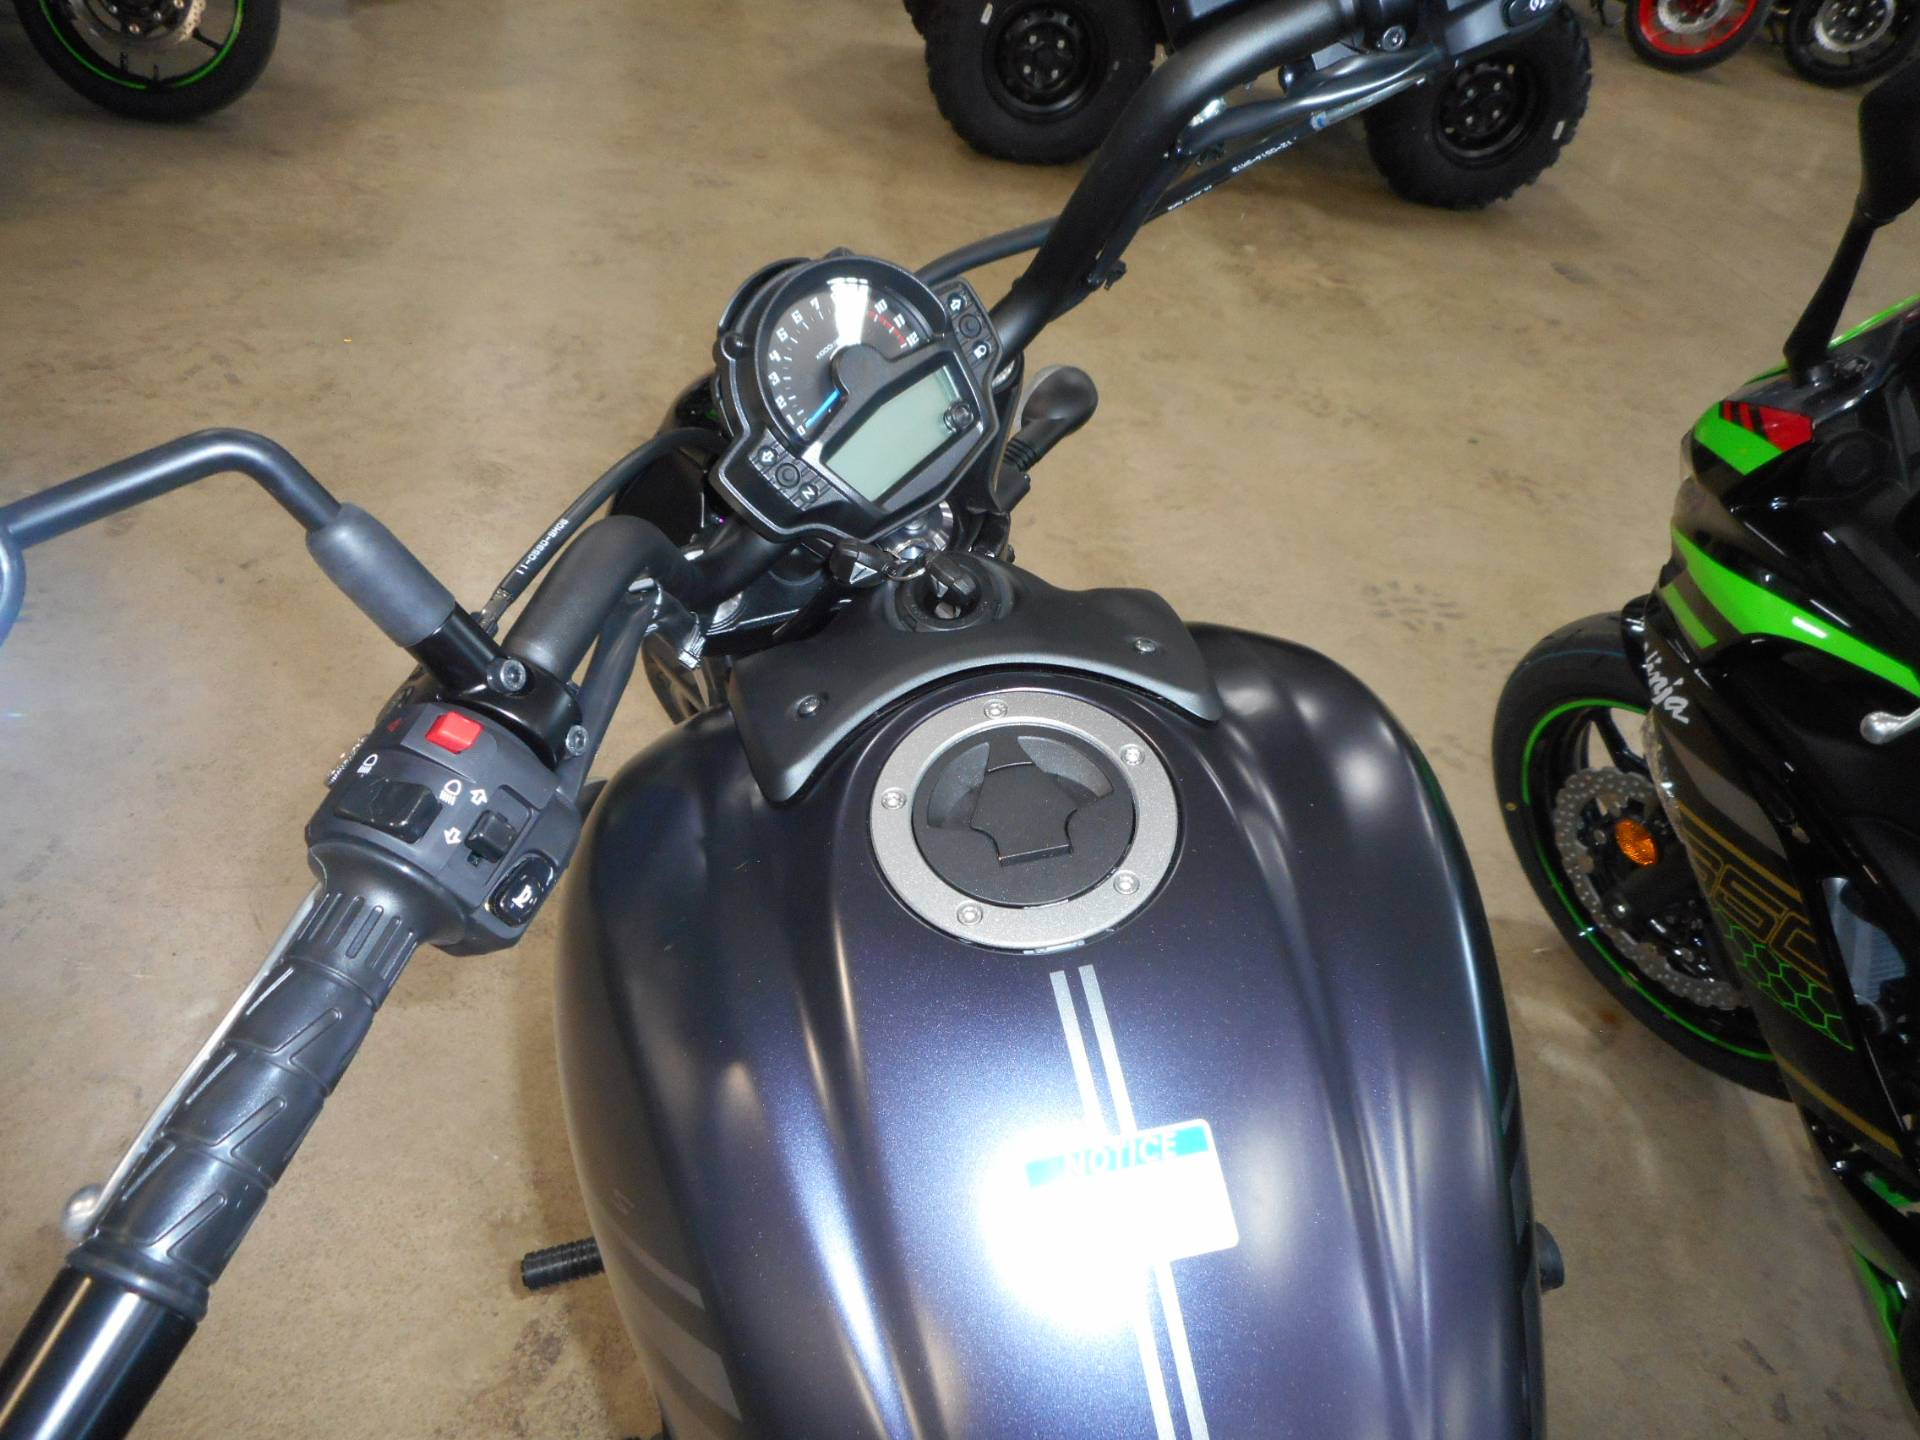 2020 Kawasaki Vulcan S ABS in Belvidere, Illinois - Photo 5